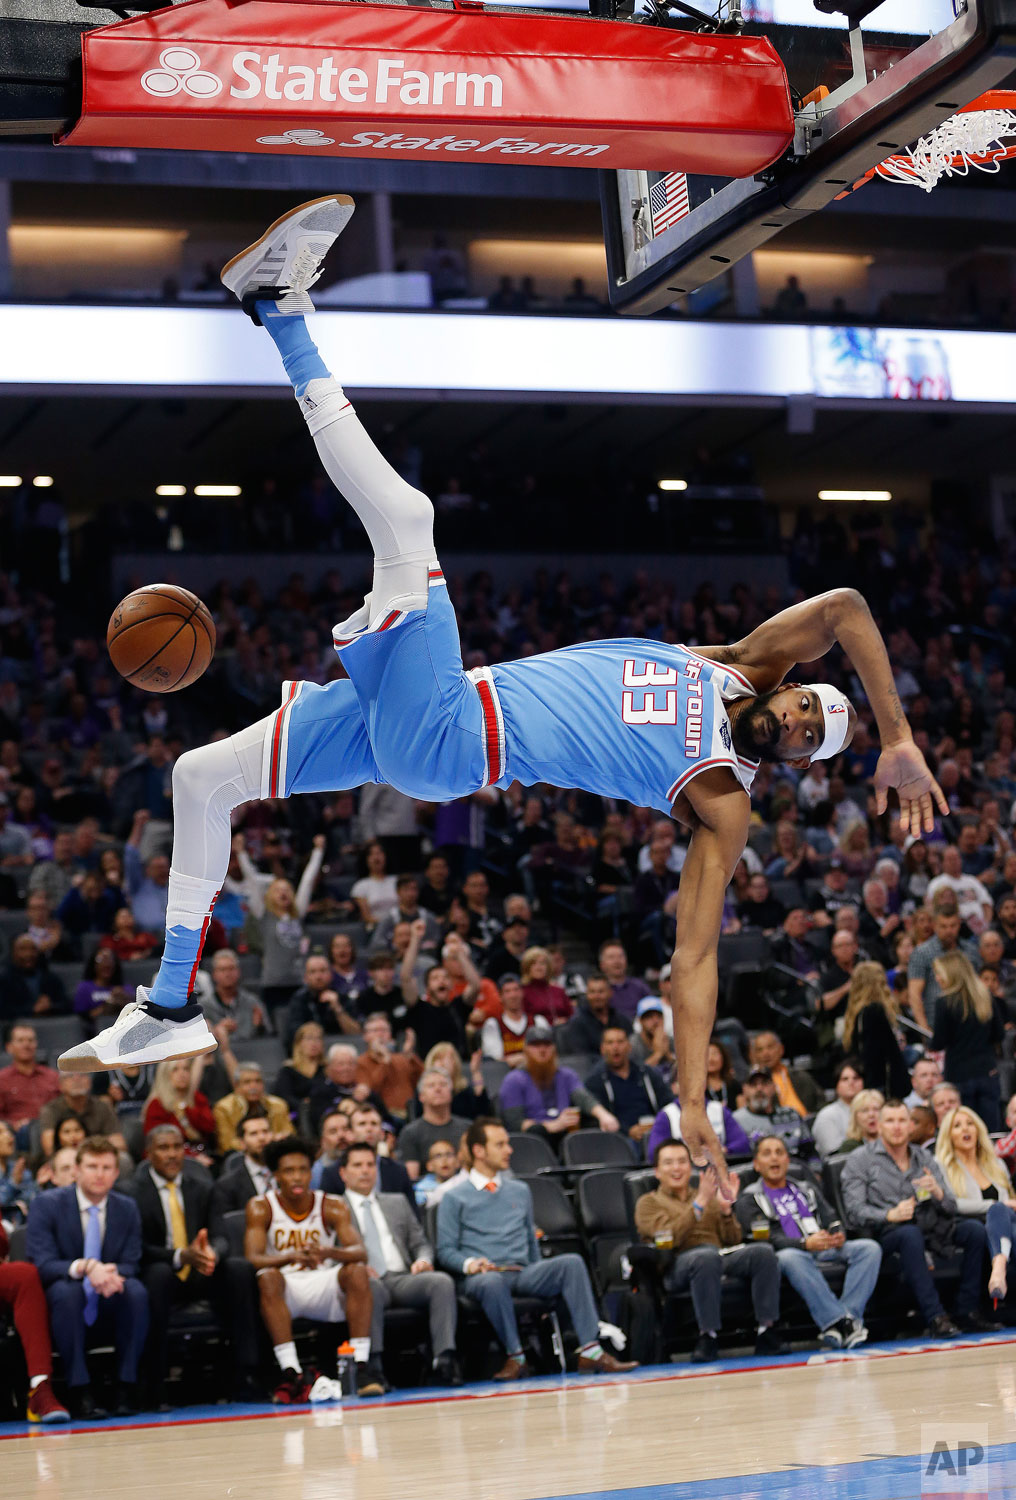 Sacramento Kings guard Corey Brewer flips through the air after scoring on a breakaway stuff during the first quarter of an NBA basketball game against the Cleveland Cavaliers Thursday, April 4, 2019, in Sacramento, Calif. (AP Photo/Rich Pedroncelli)